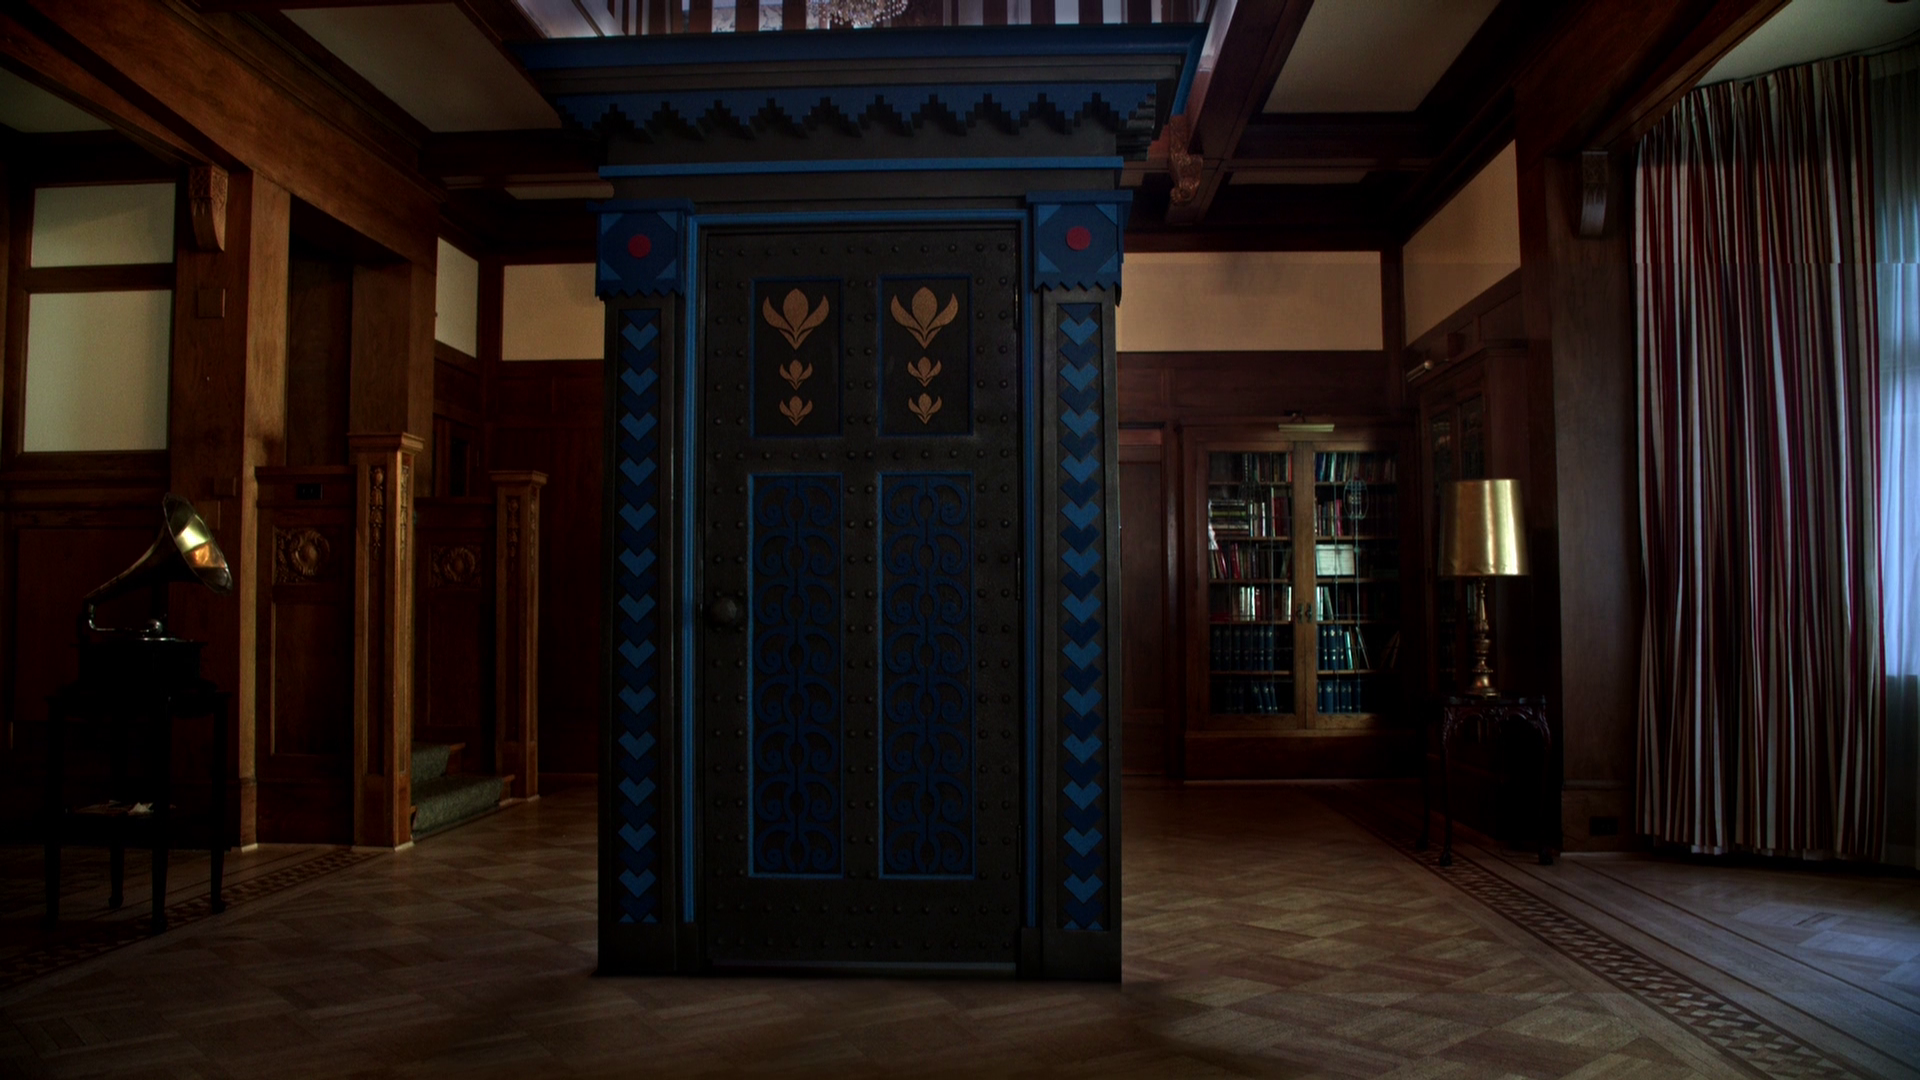 Magic Doors & Magic Doors | Once Upon a Time Wiki | FANDOM powered by Wikia